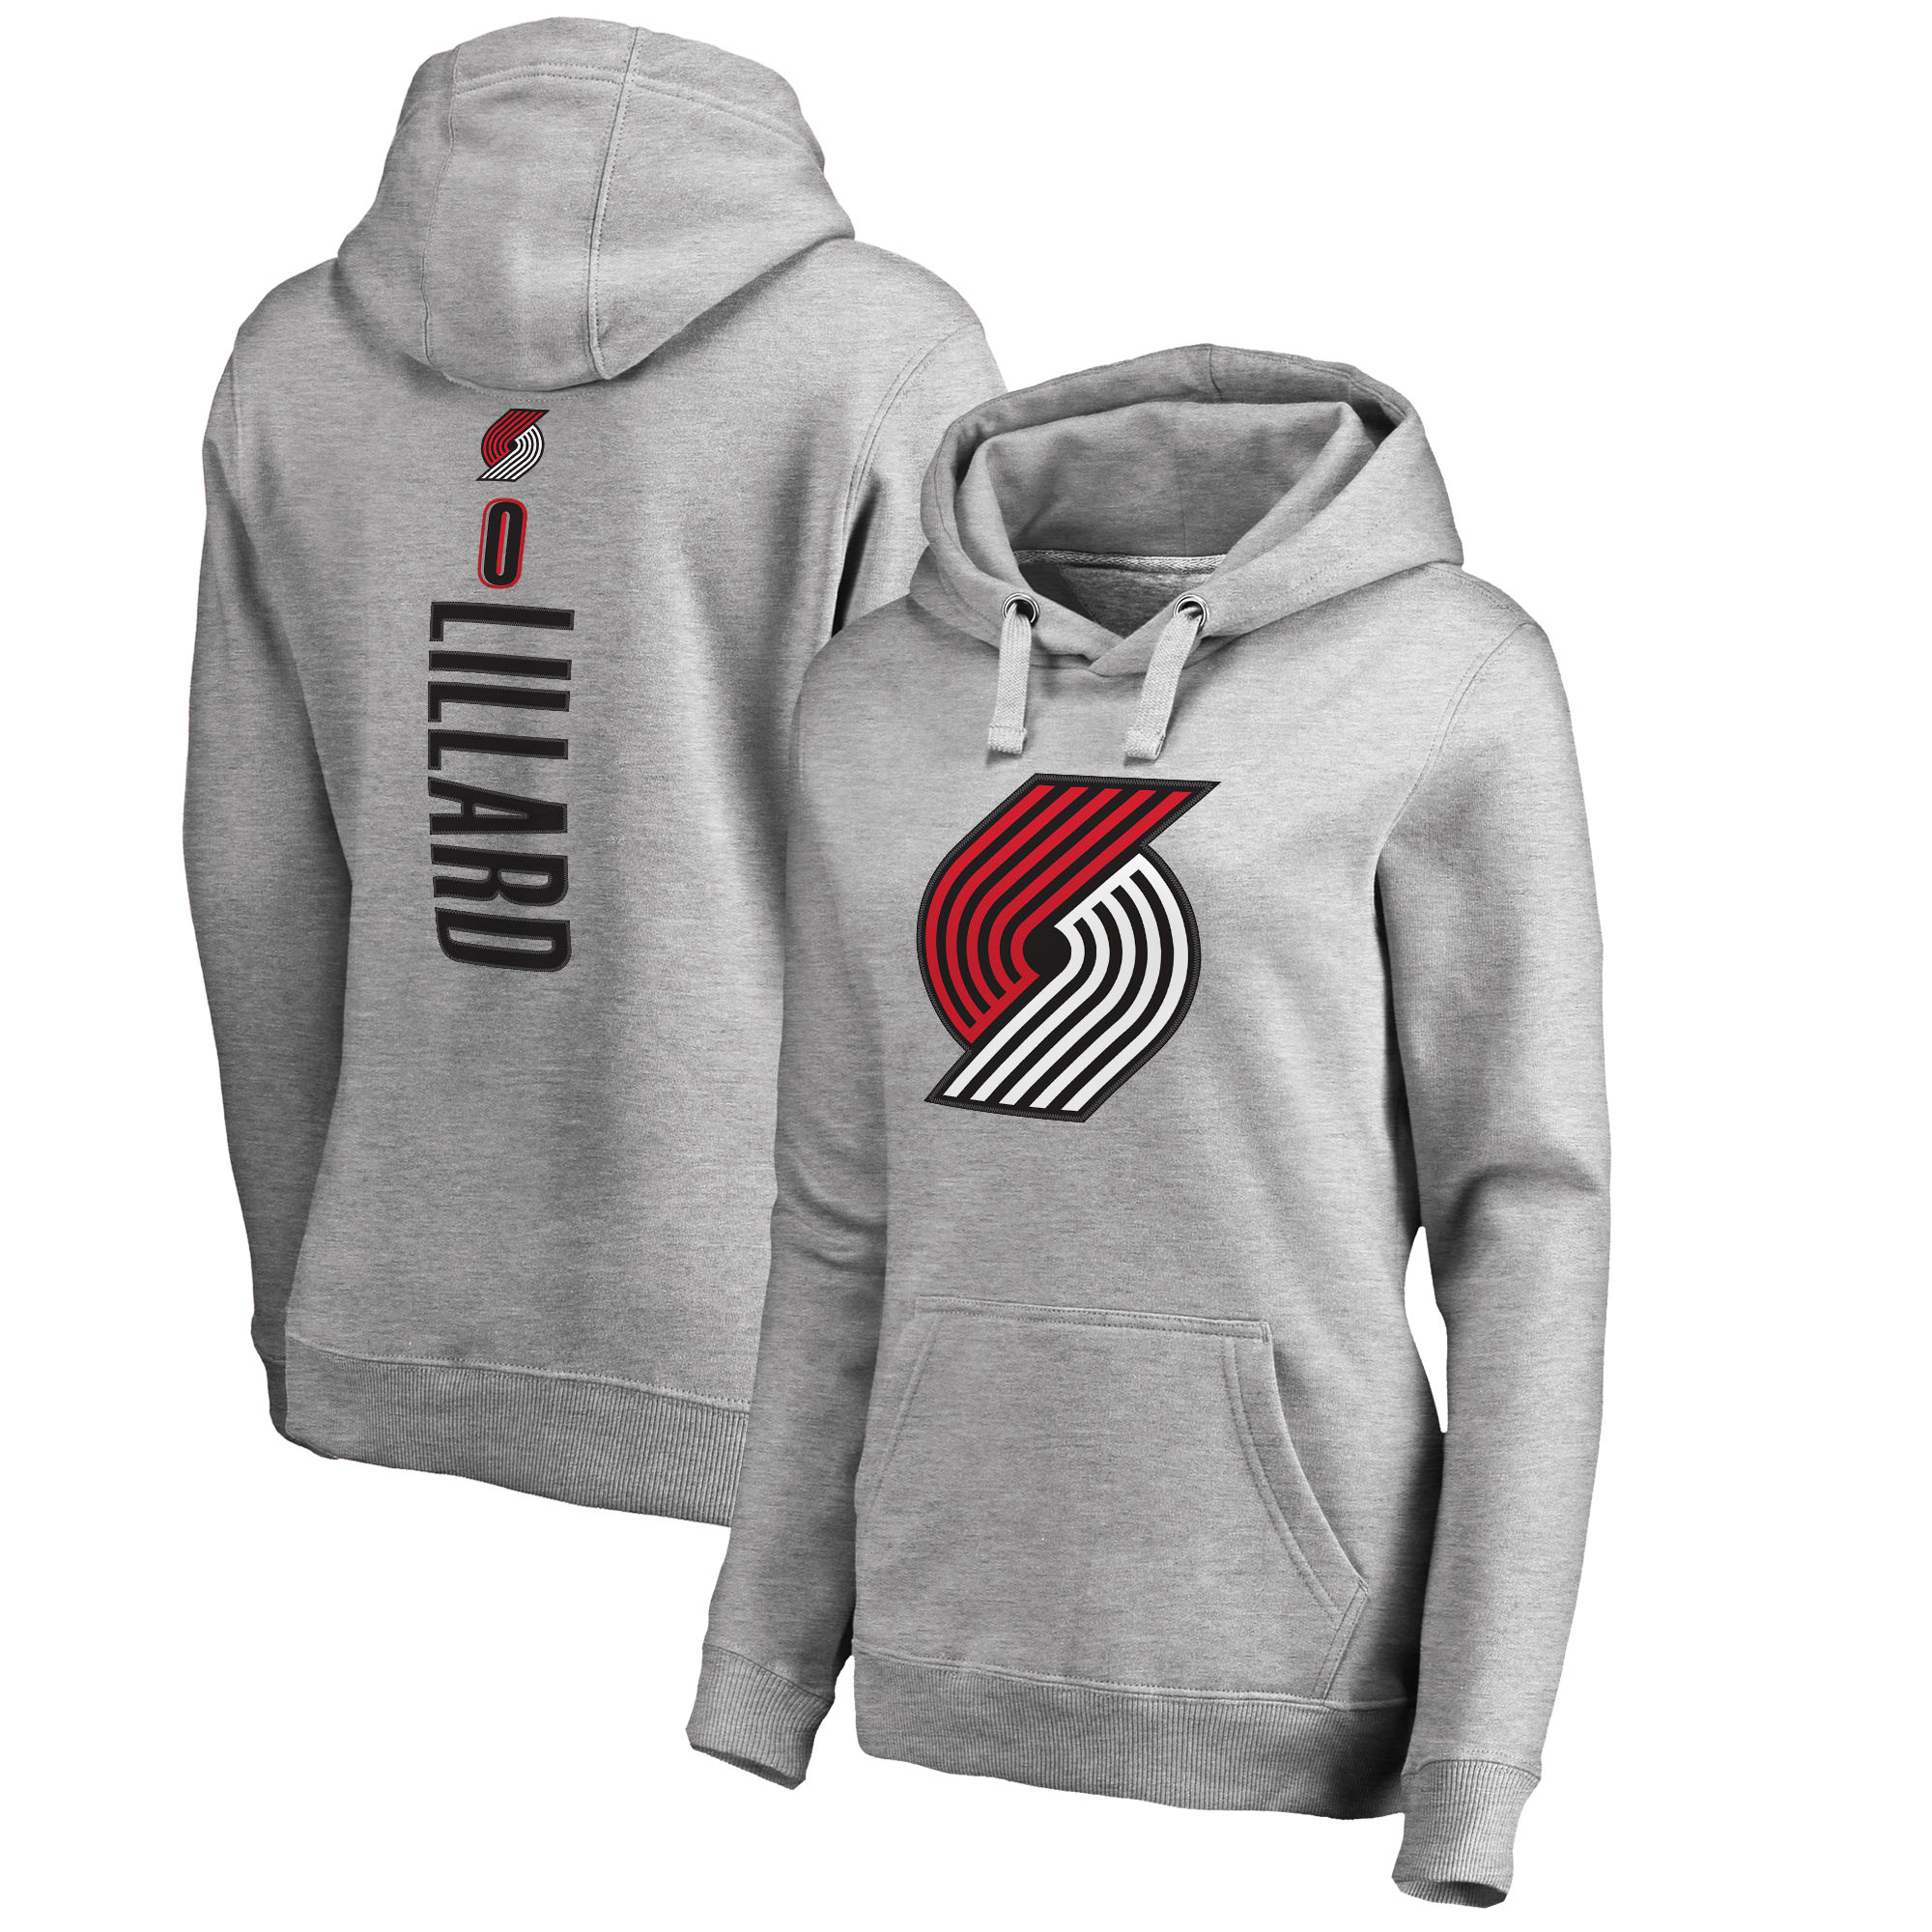 Damian Lillard Portland Trail Blazers Fanatics Branded Women's Team Backer Name & Number Pullover Hoodie - Heathered Gray